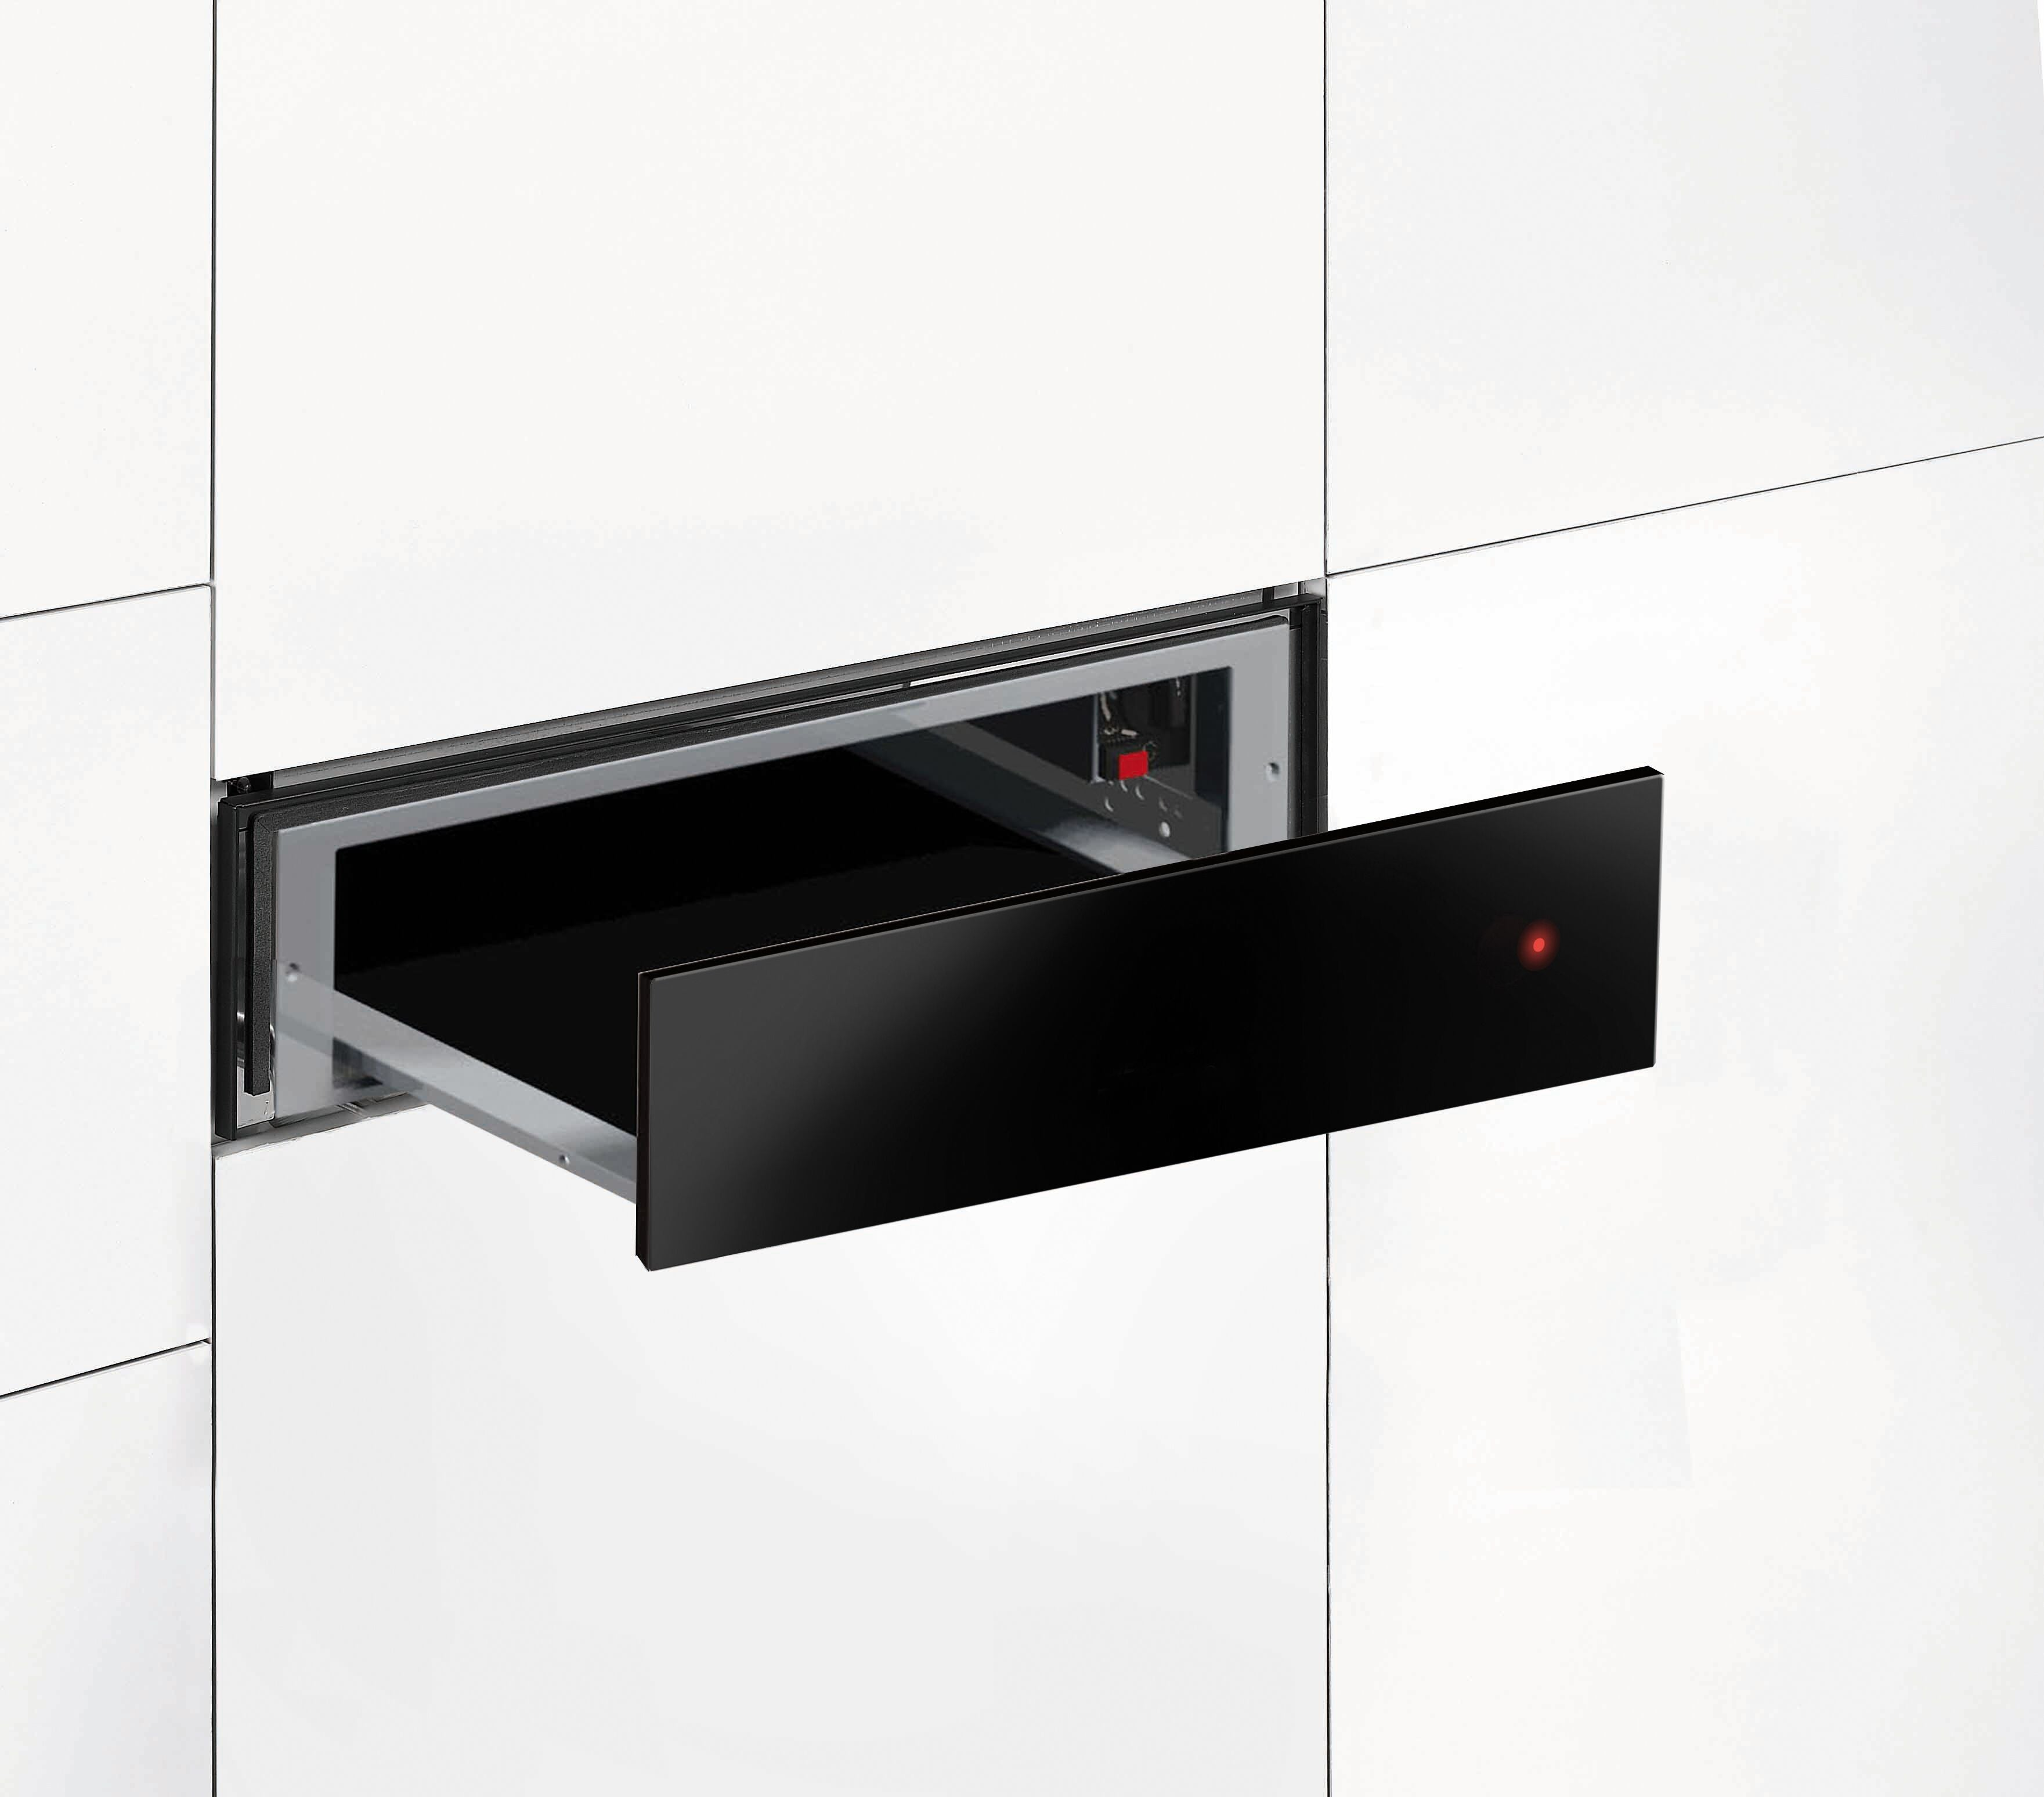 Hoover Vogue Premium HPWD140/1N 14cm Warming Drawer - Black Glass Lifestyle Image